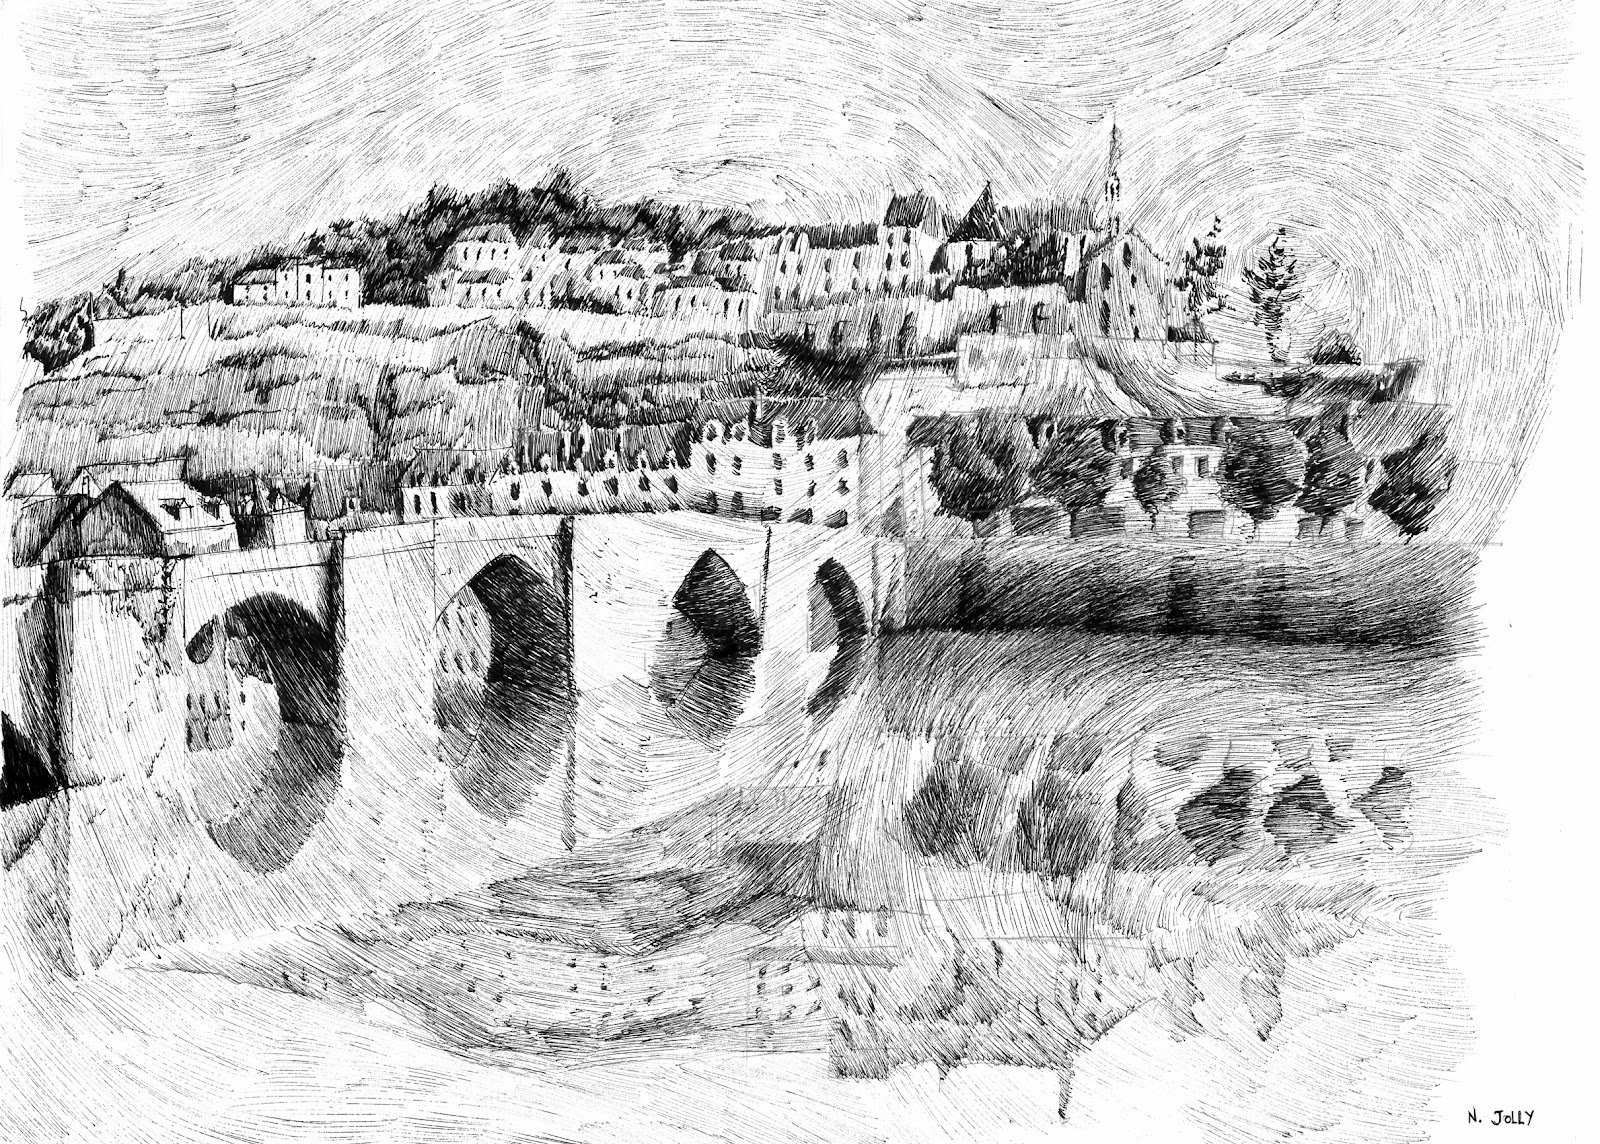 10-Terrasson-Village-French-Nicolas-Jolly-Fingerprints-Black-ink-drawings-www-designstack-co